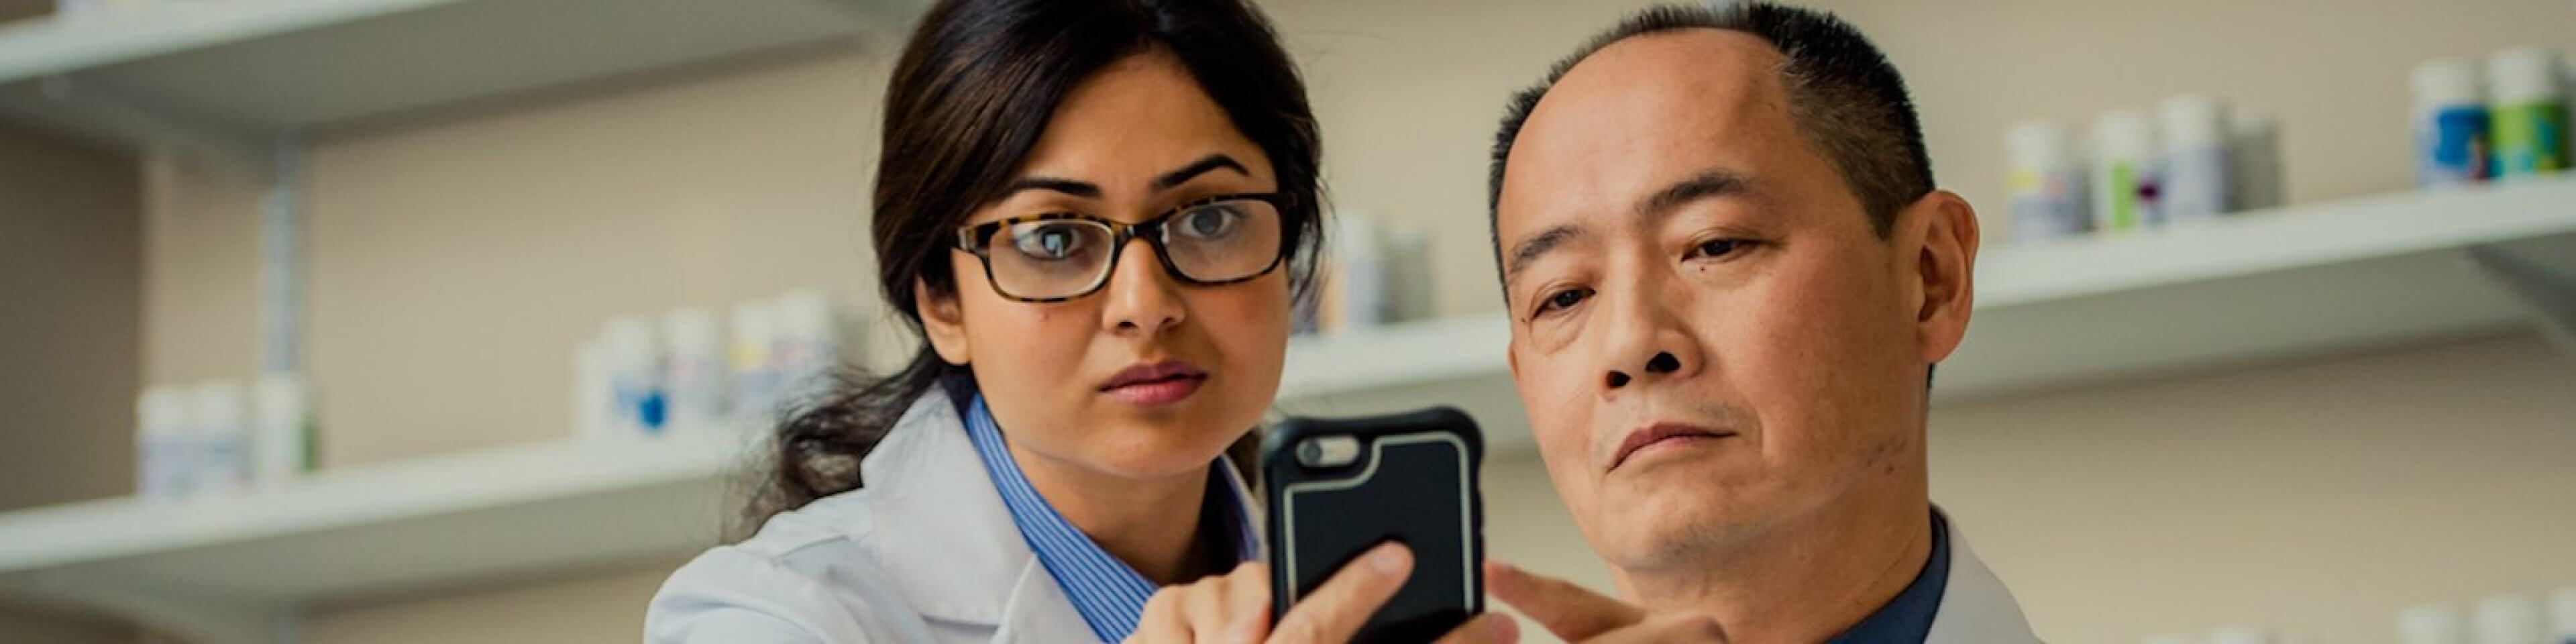 Pharmacists looking at data on a mobile device